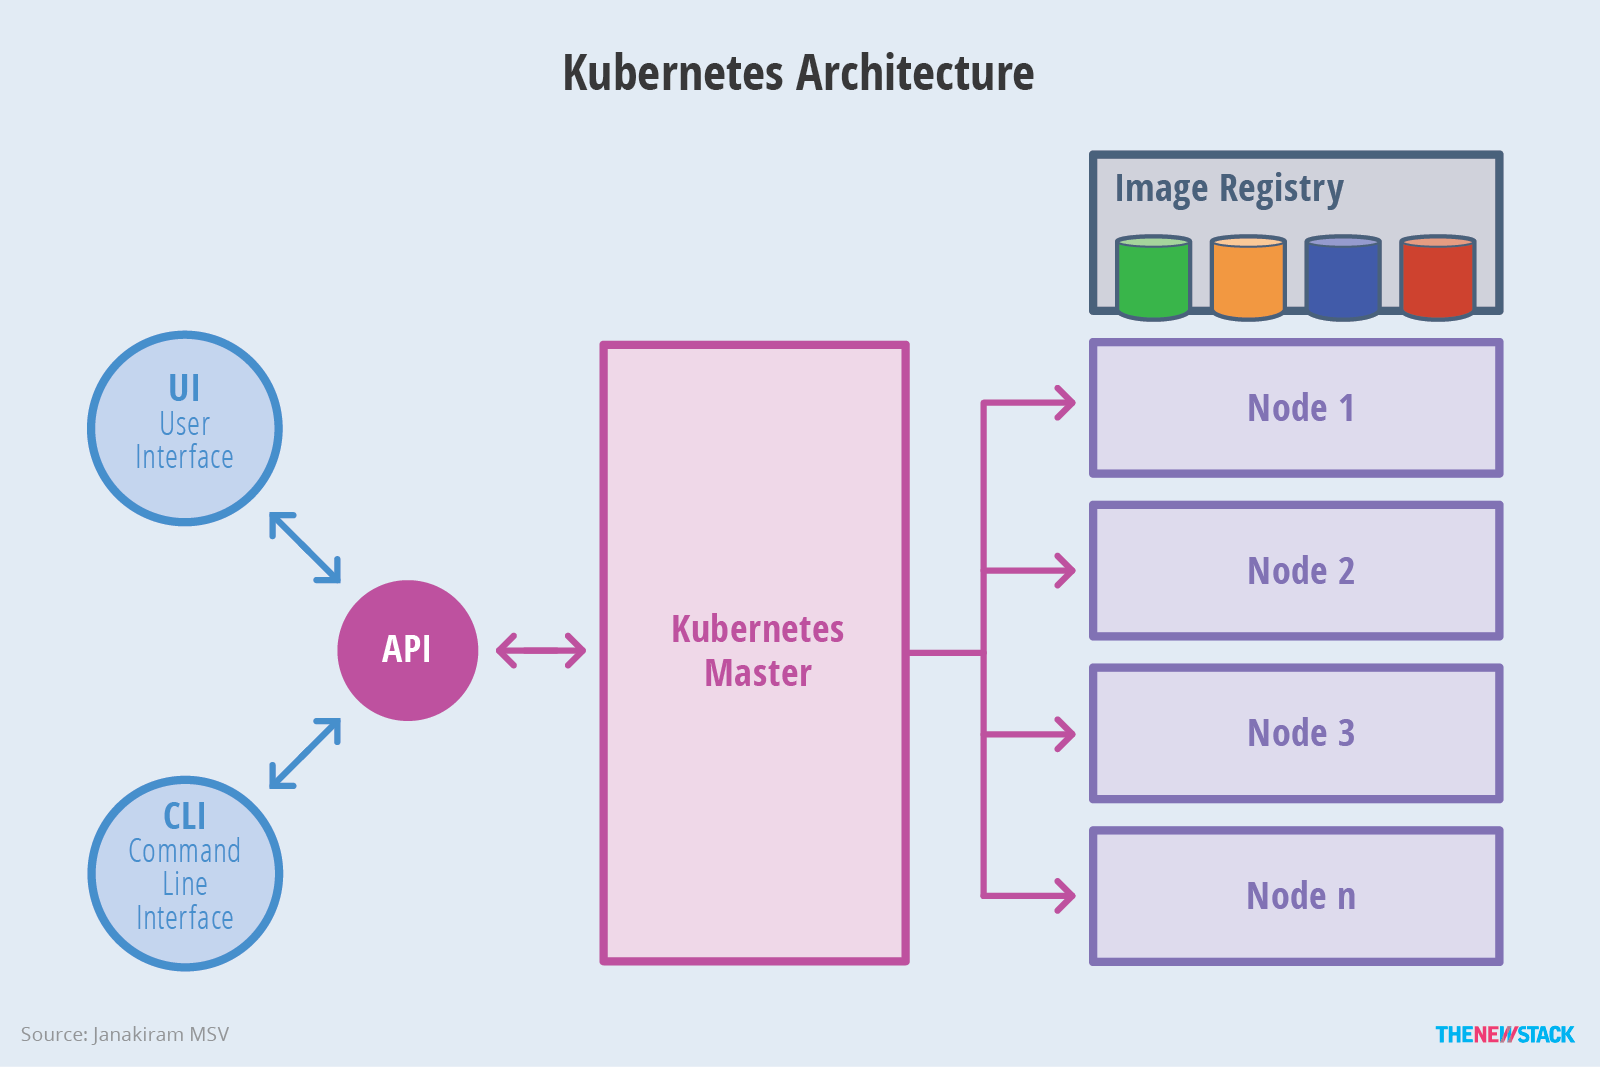 Figure 2: Kubernetes breaks down into multiple architectural components.